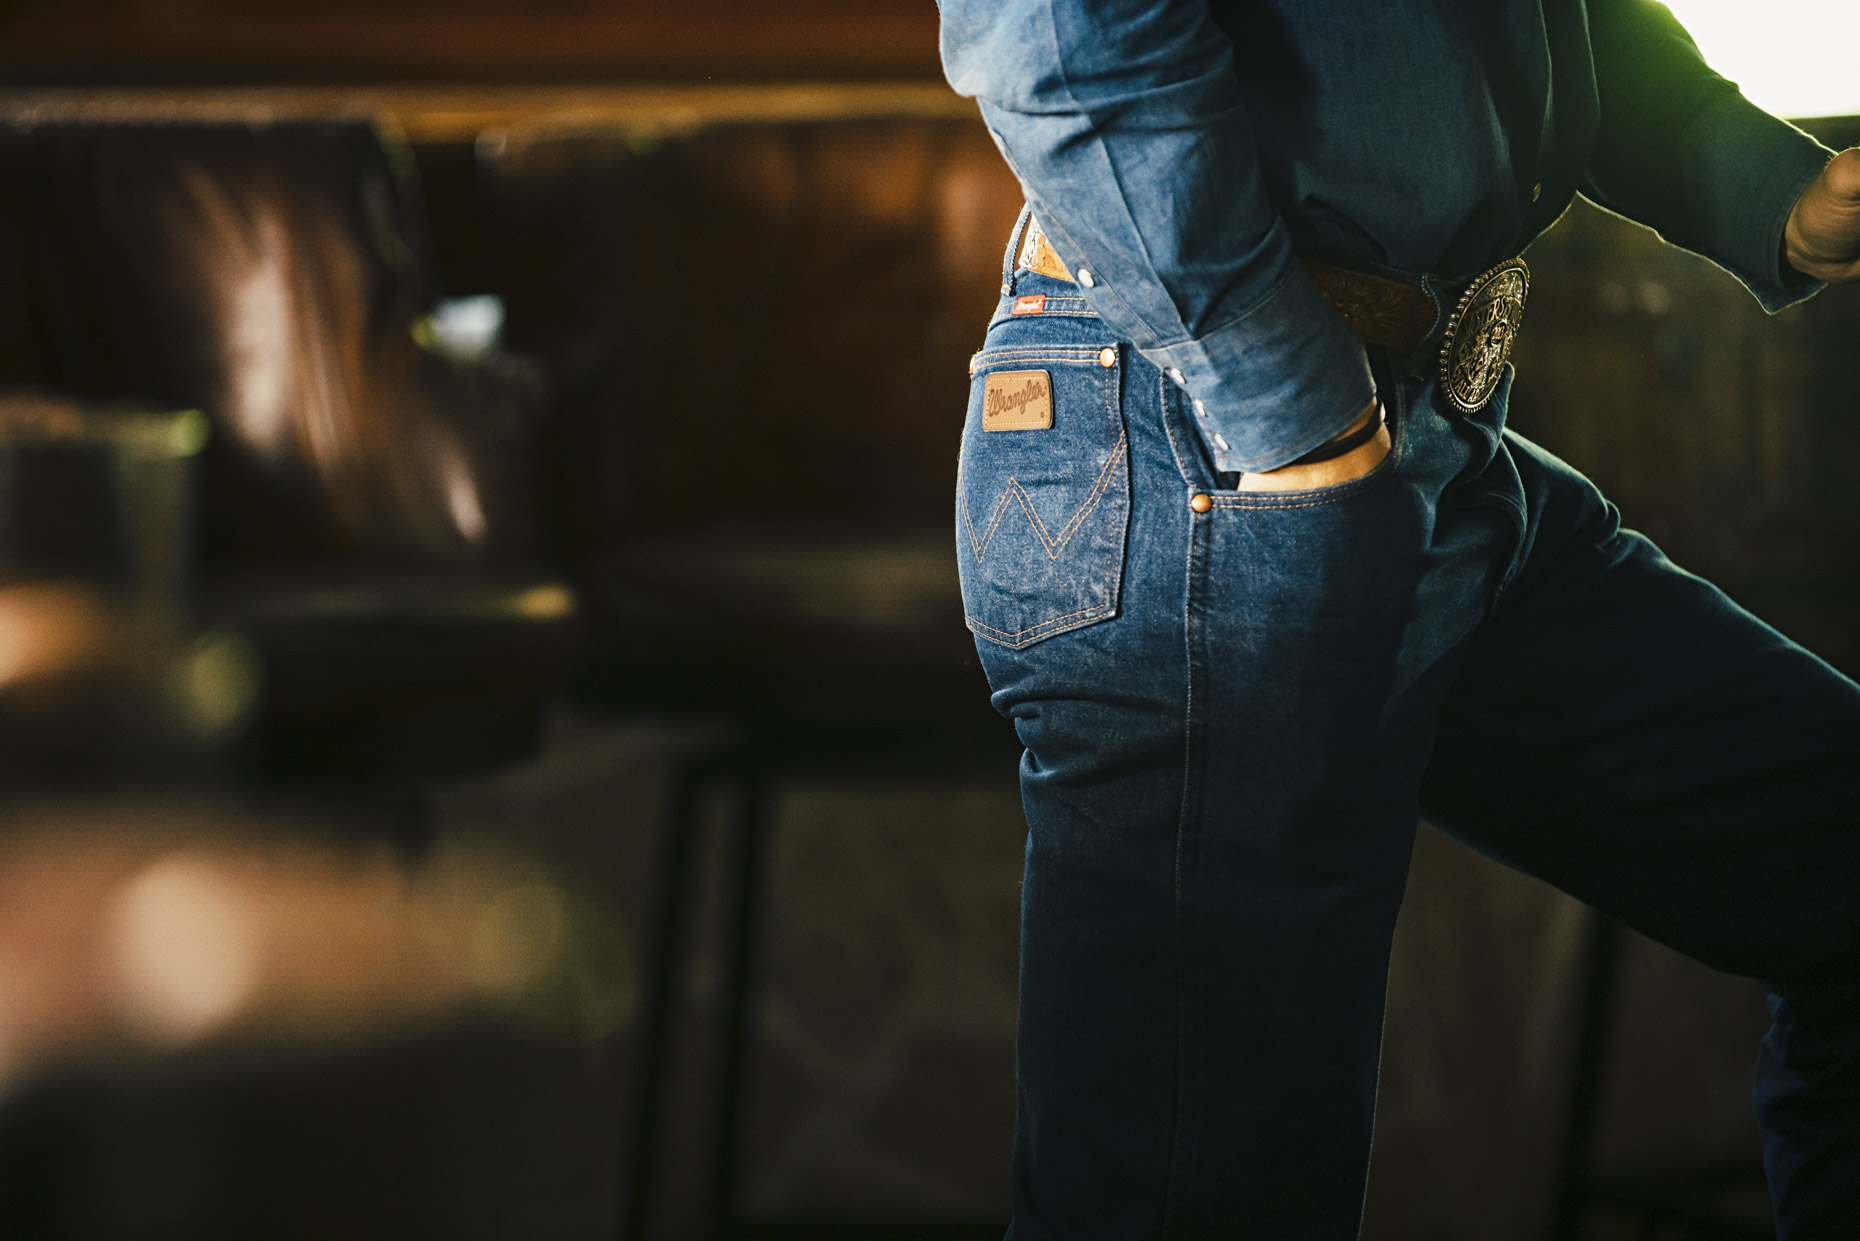 Inti St Clair photo of tight shot of cowboy butt in wrangler jeans in bar